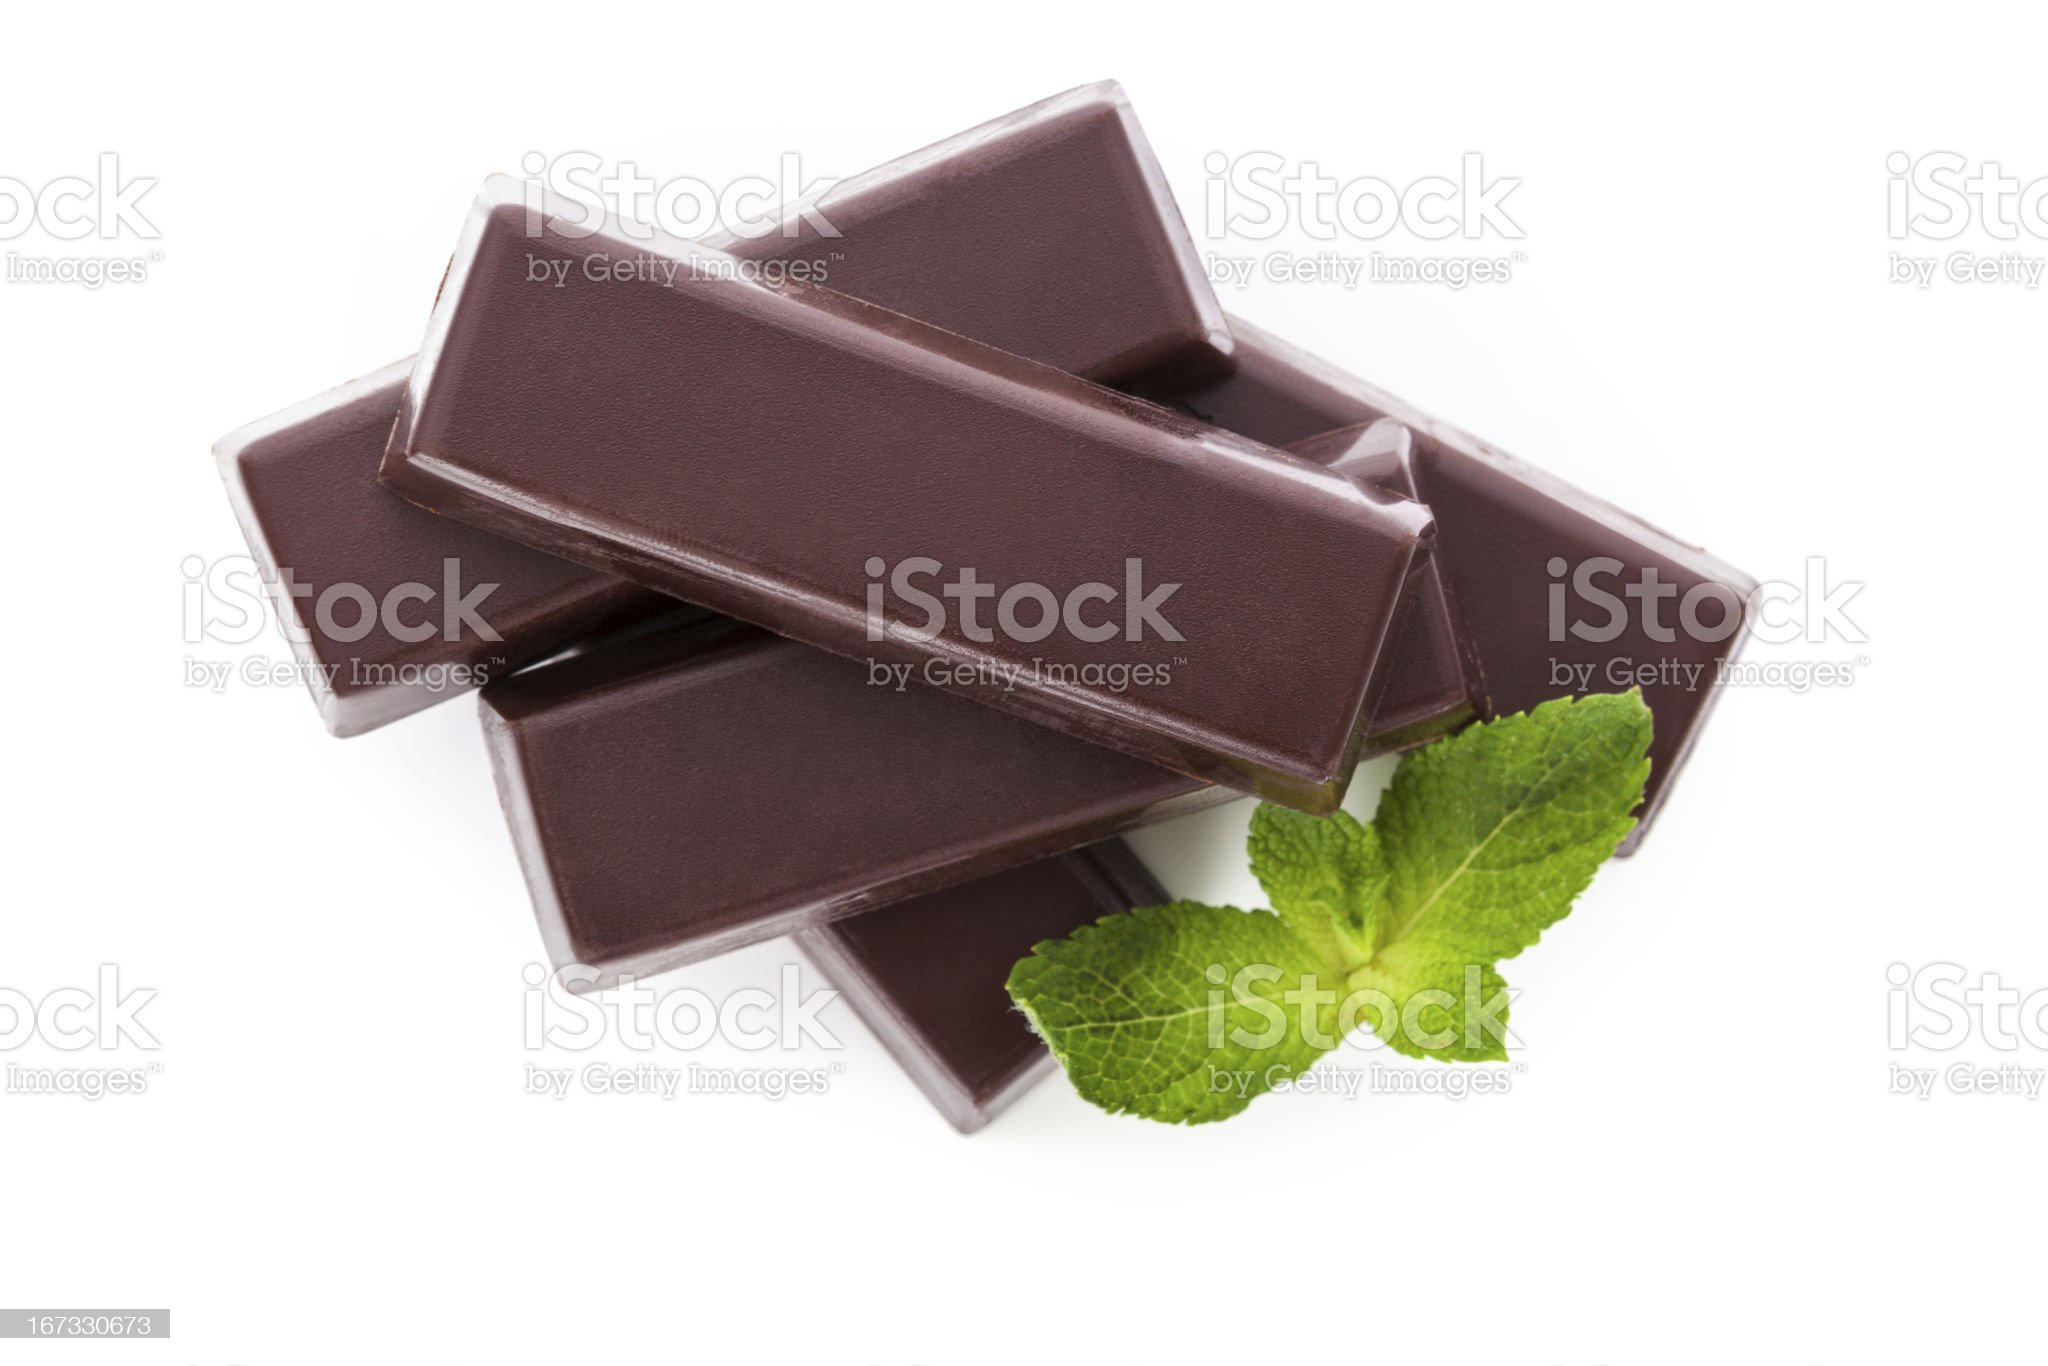 Chocolate bar with mint isolated over white. royalty-free stock photo